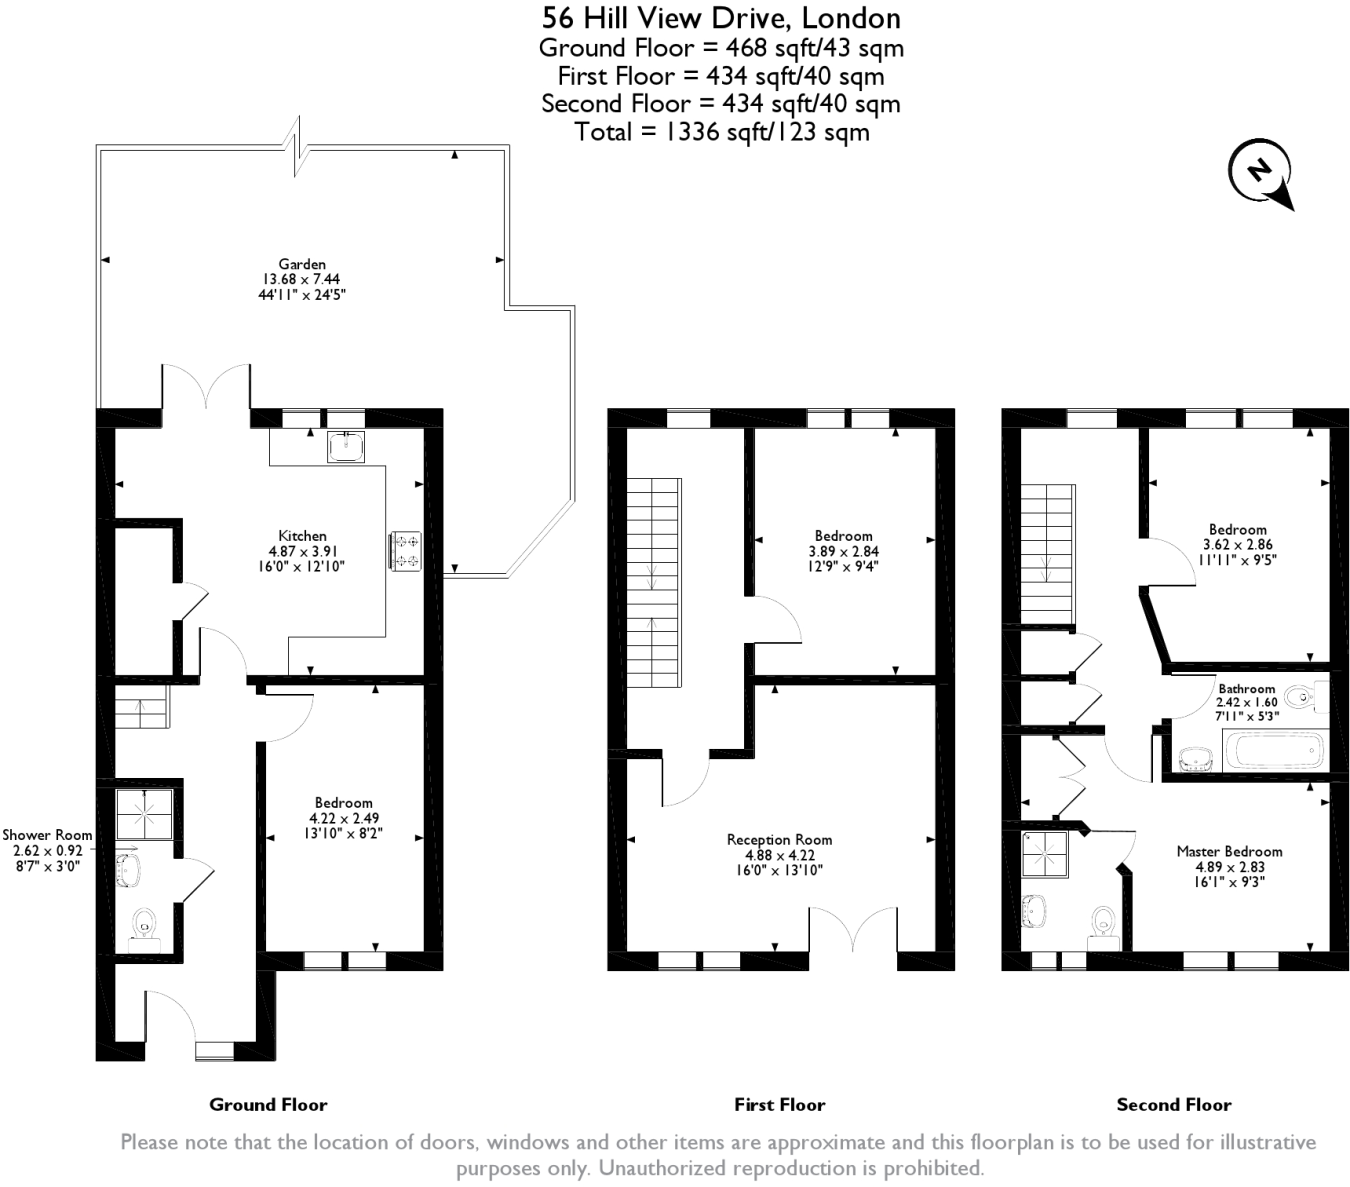 4 bedroom end of terrace house for sale in hill view drive se28 se28